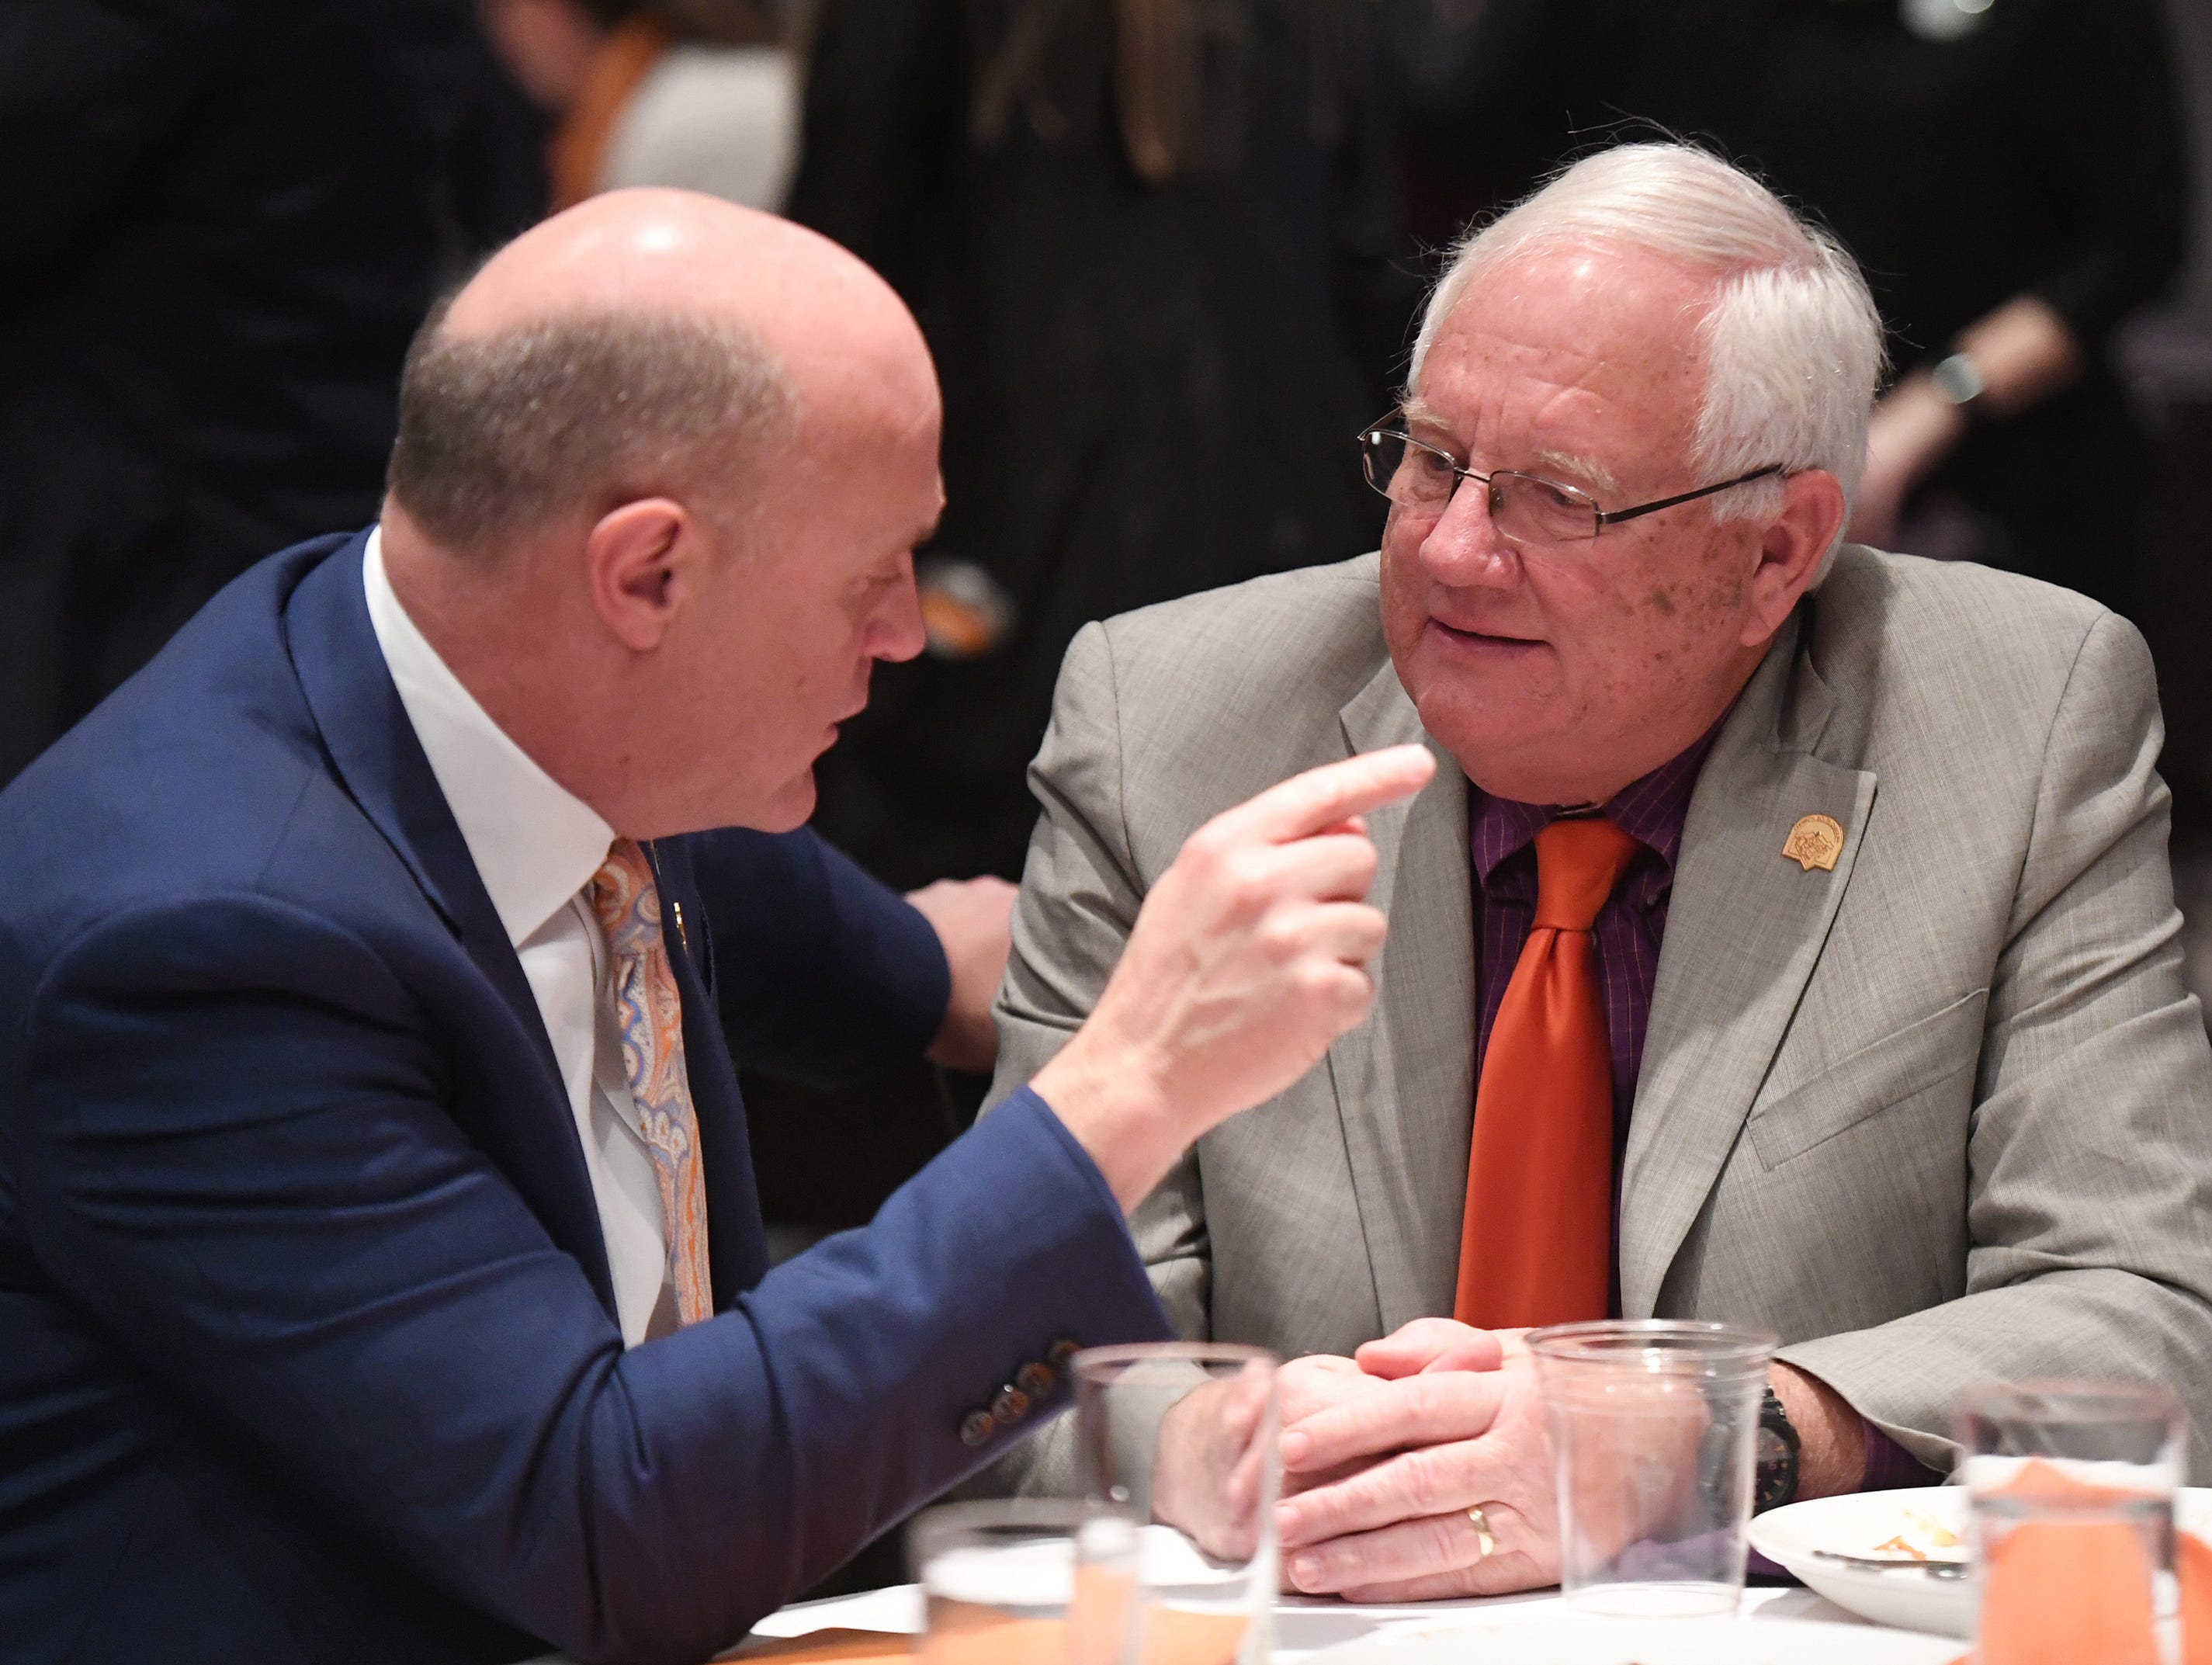 Clemson University President James Clements talks with City of Clemson Mayor J.C. Cook, at the end of the State of Clemson event held at the Madren Center Tuesday, Feb. 19, 2019.